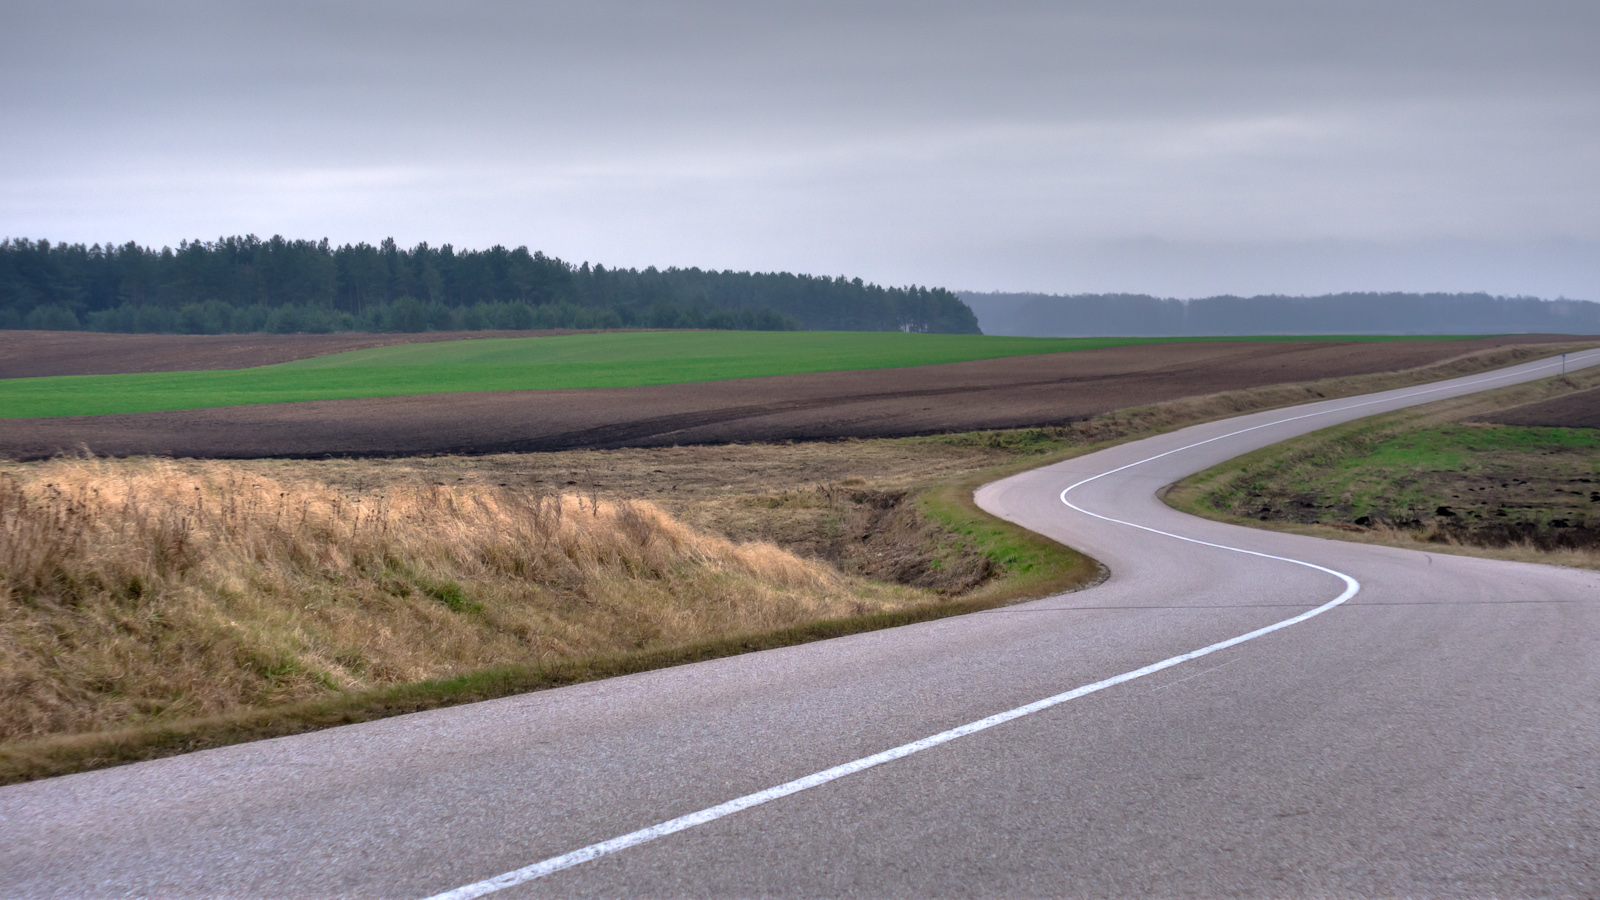 Cold windy day on the road in the countryside, near the lithuanian - polish border. Kalvarija, Lithuania.